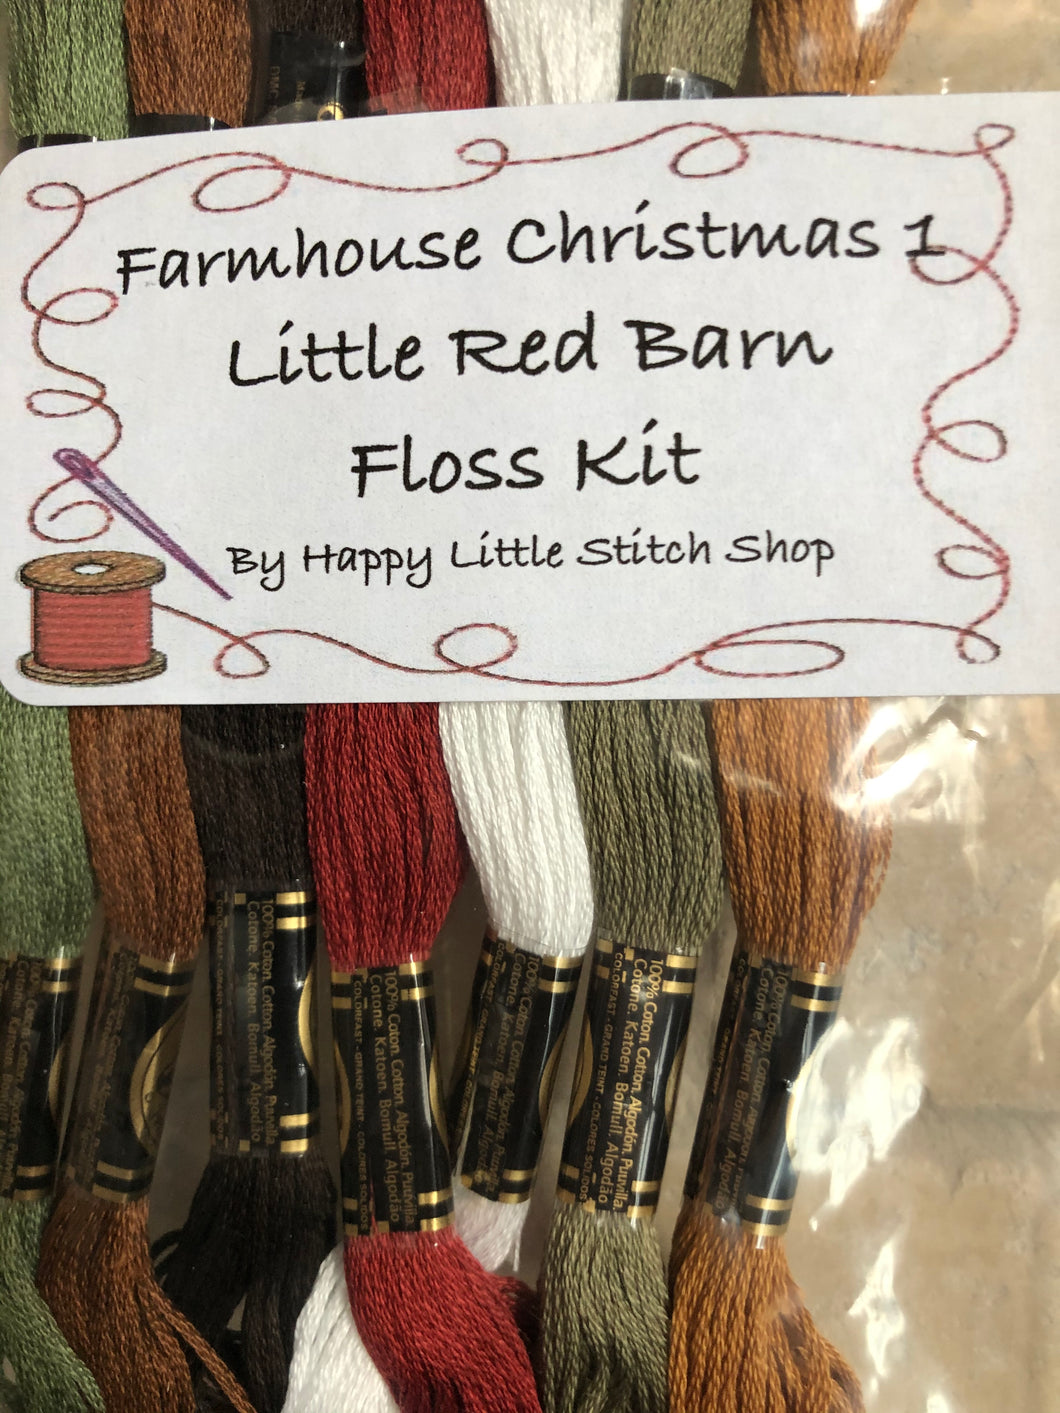 Floss Kit - Farmhouse Christmas 1 - Little Red Barn